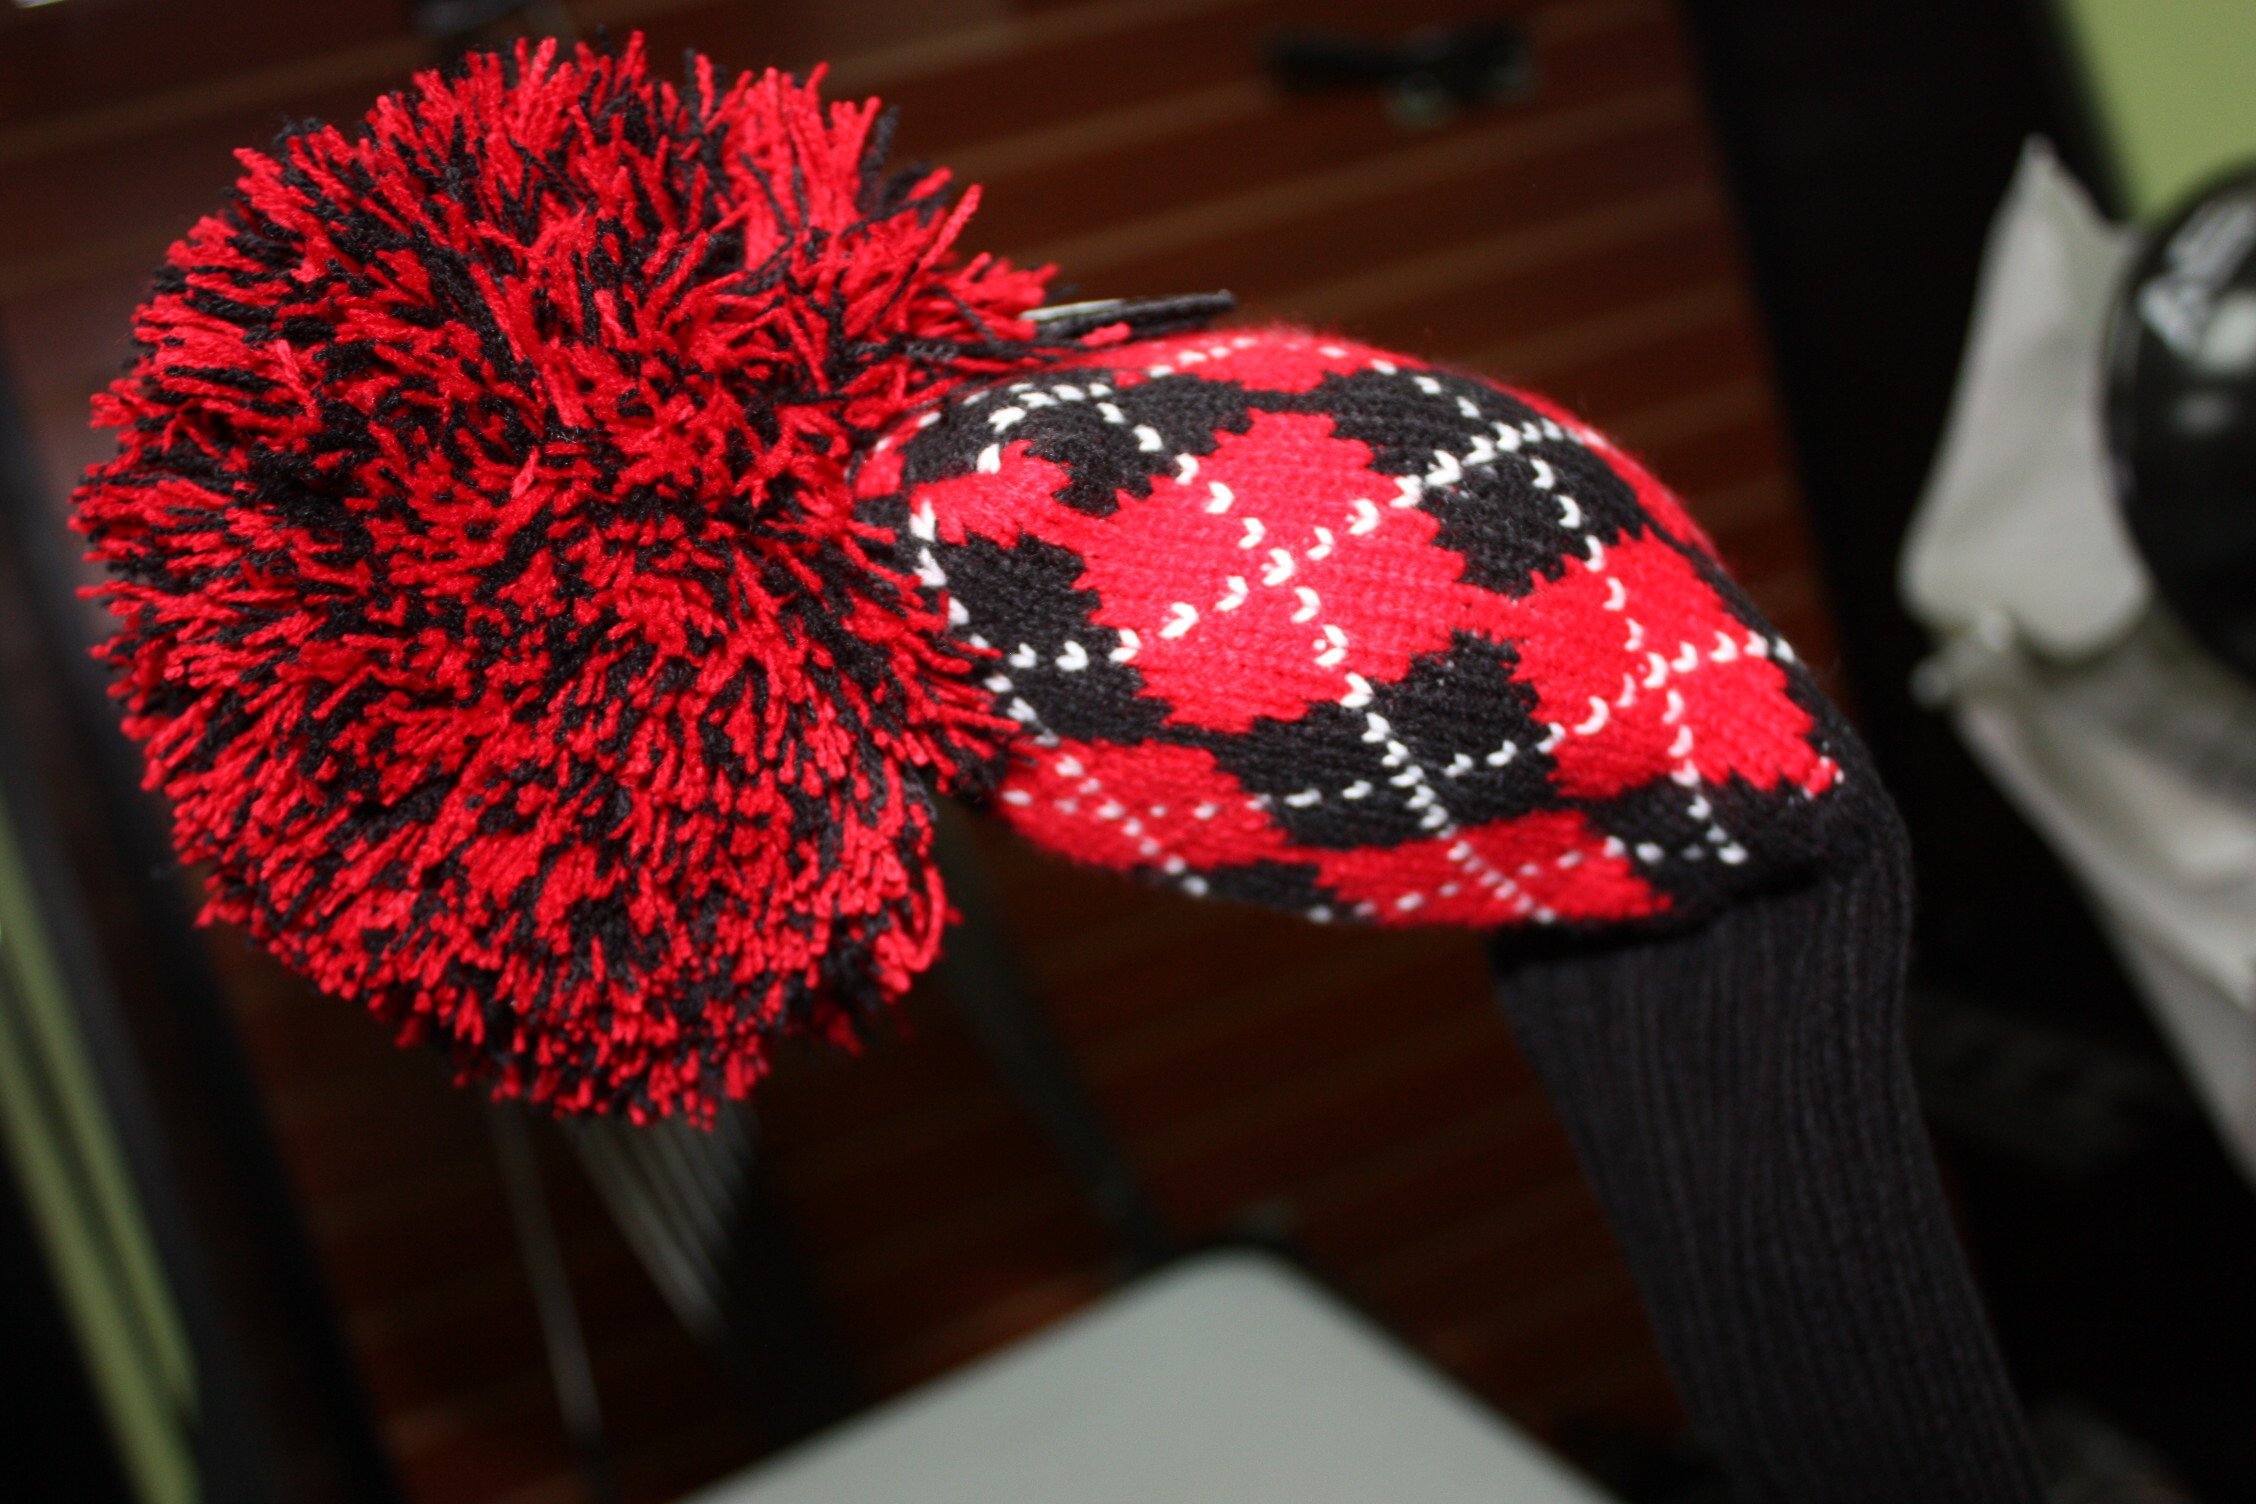 Majek #3, 4, 5, & 6 Hybrid Combo Pack Rescue Utility Argyle Red & Black Golf Headcover Knit Pom Pom Retro Classic Vintage Head Cover